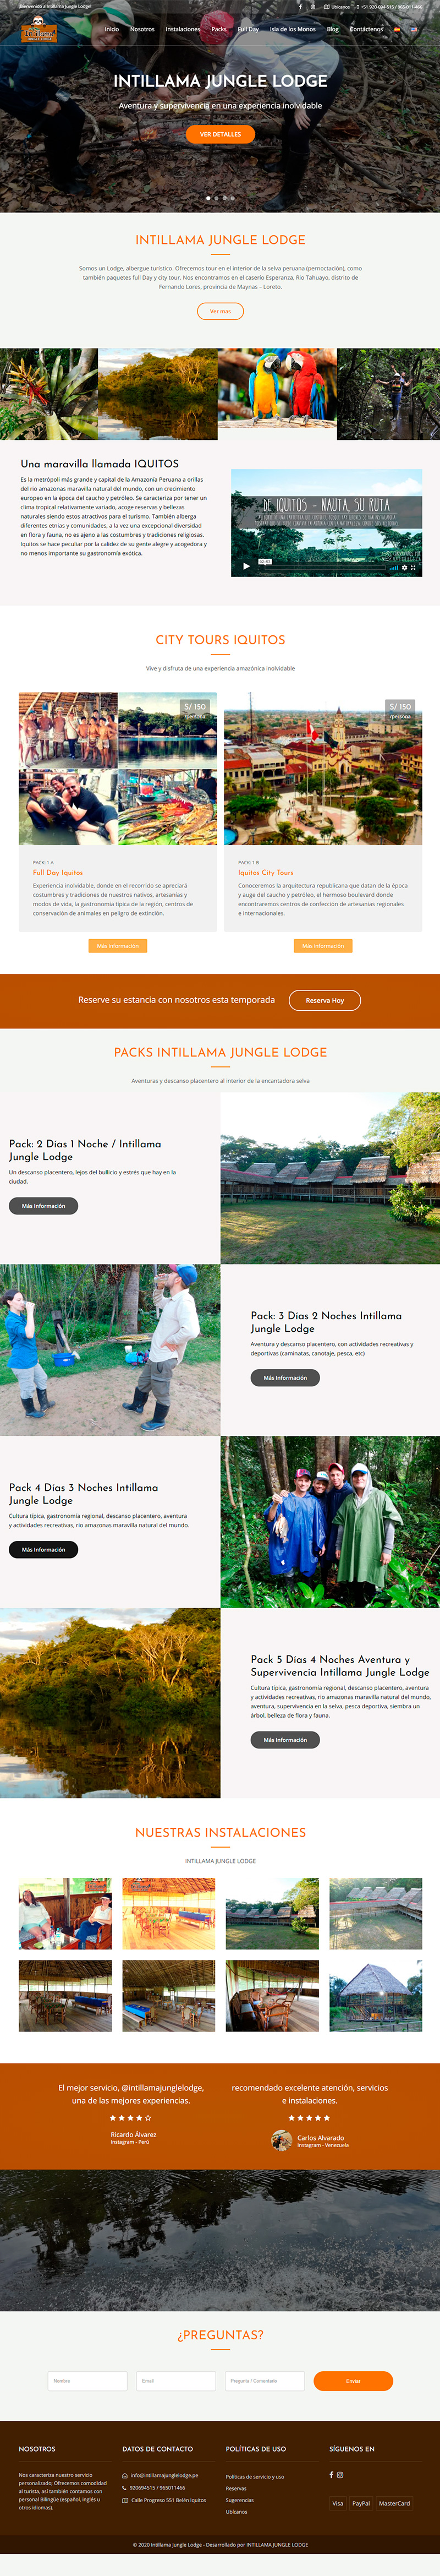 INTILLAMA JUNGLE LODGE - Página web en WordPress